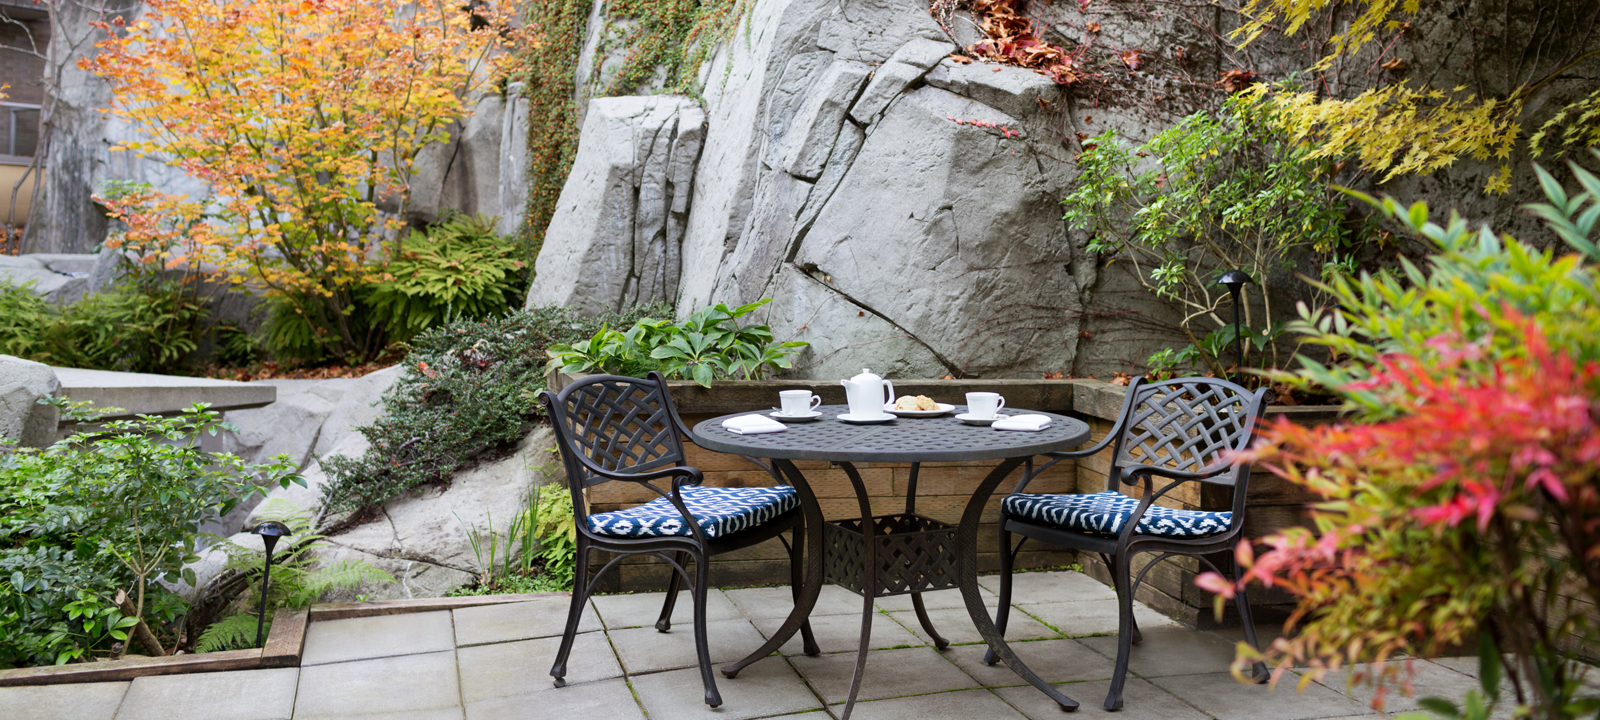 Pond courtyard at Amica West Vancouver senior living residence.